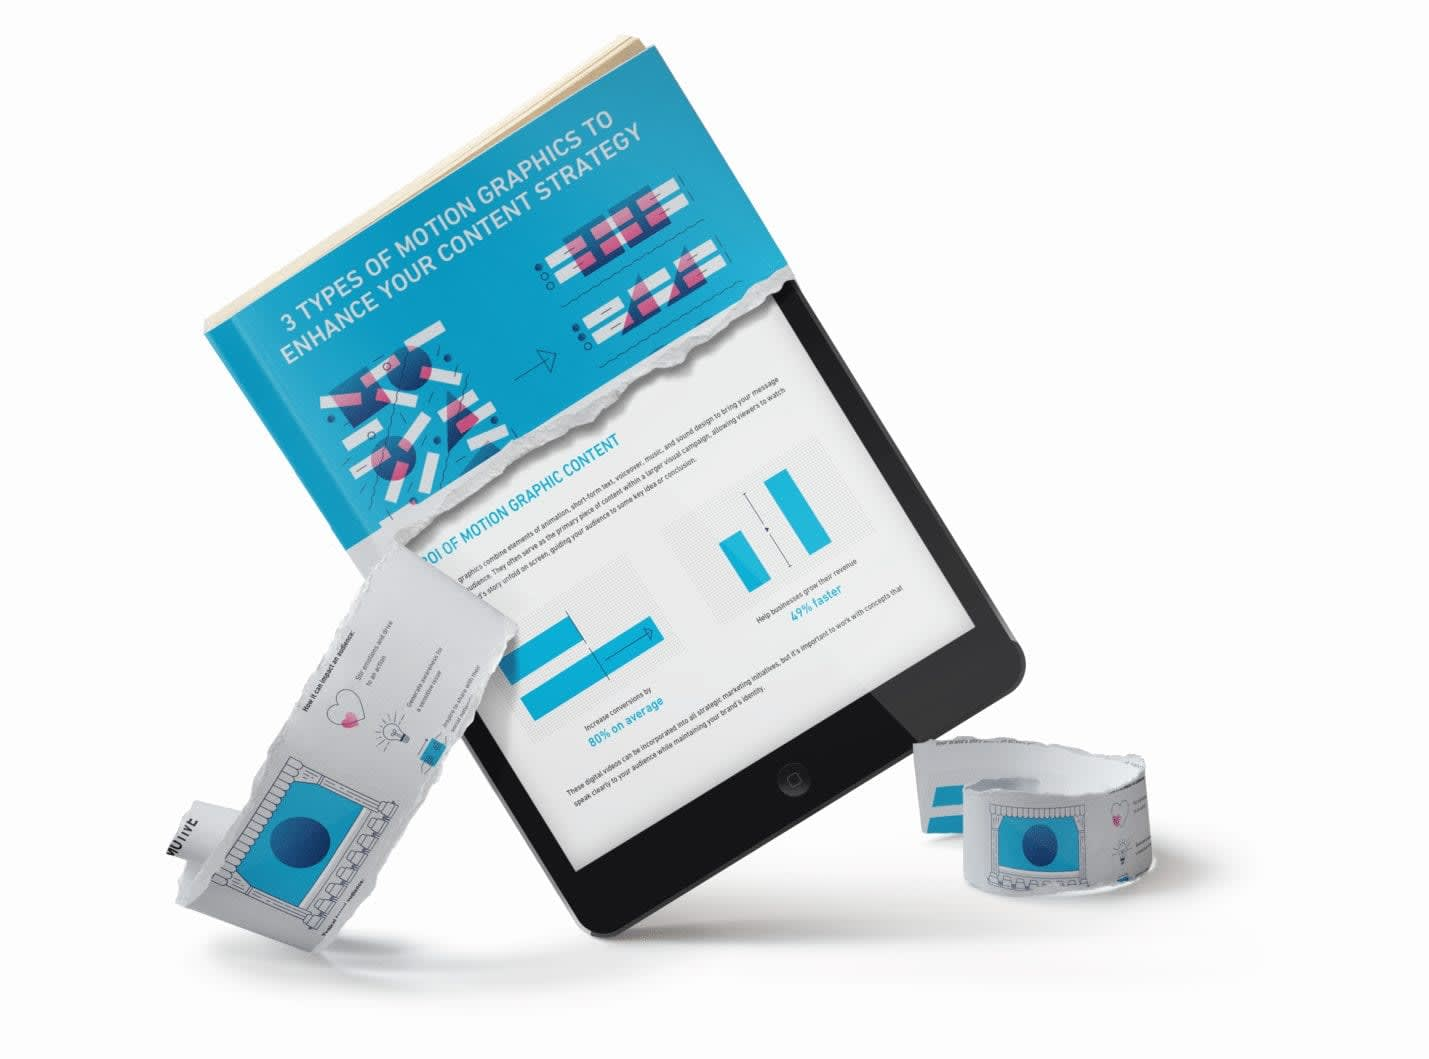 An image of a tablet showing an ebook about motion graphics